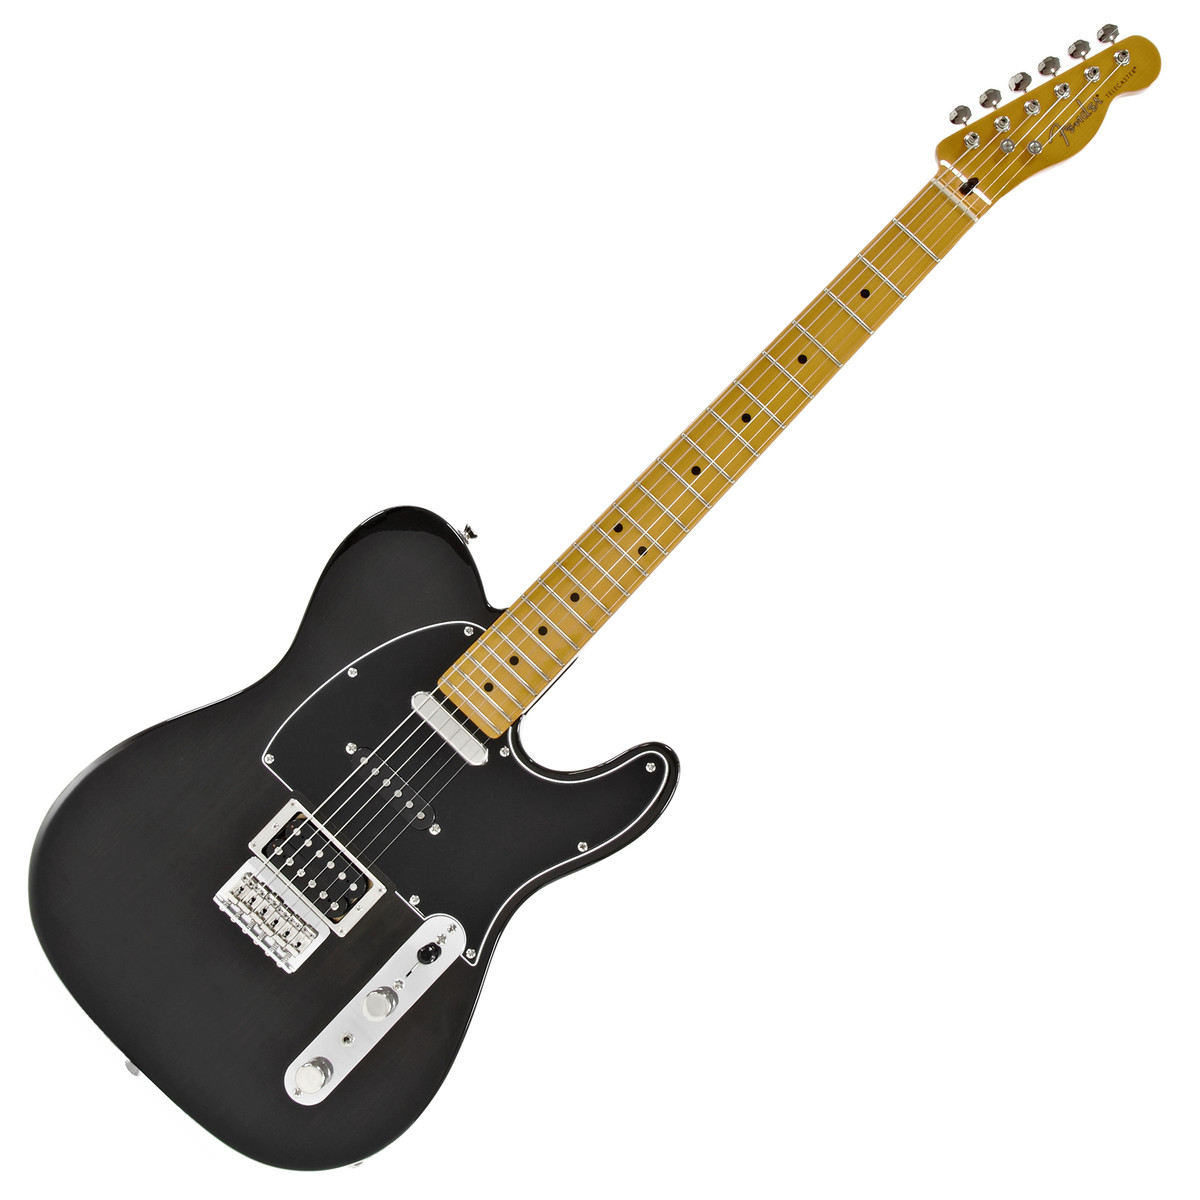 Fender Modern Player Telecaster Plus Charcoal Transparent At Gear4music 4 Way Wiring Loading Zoom